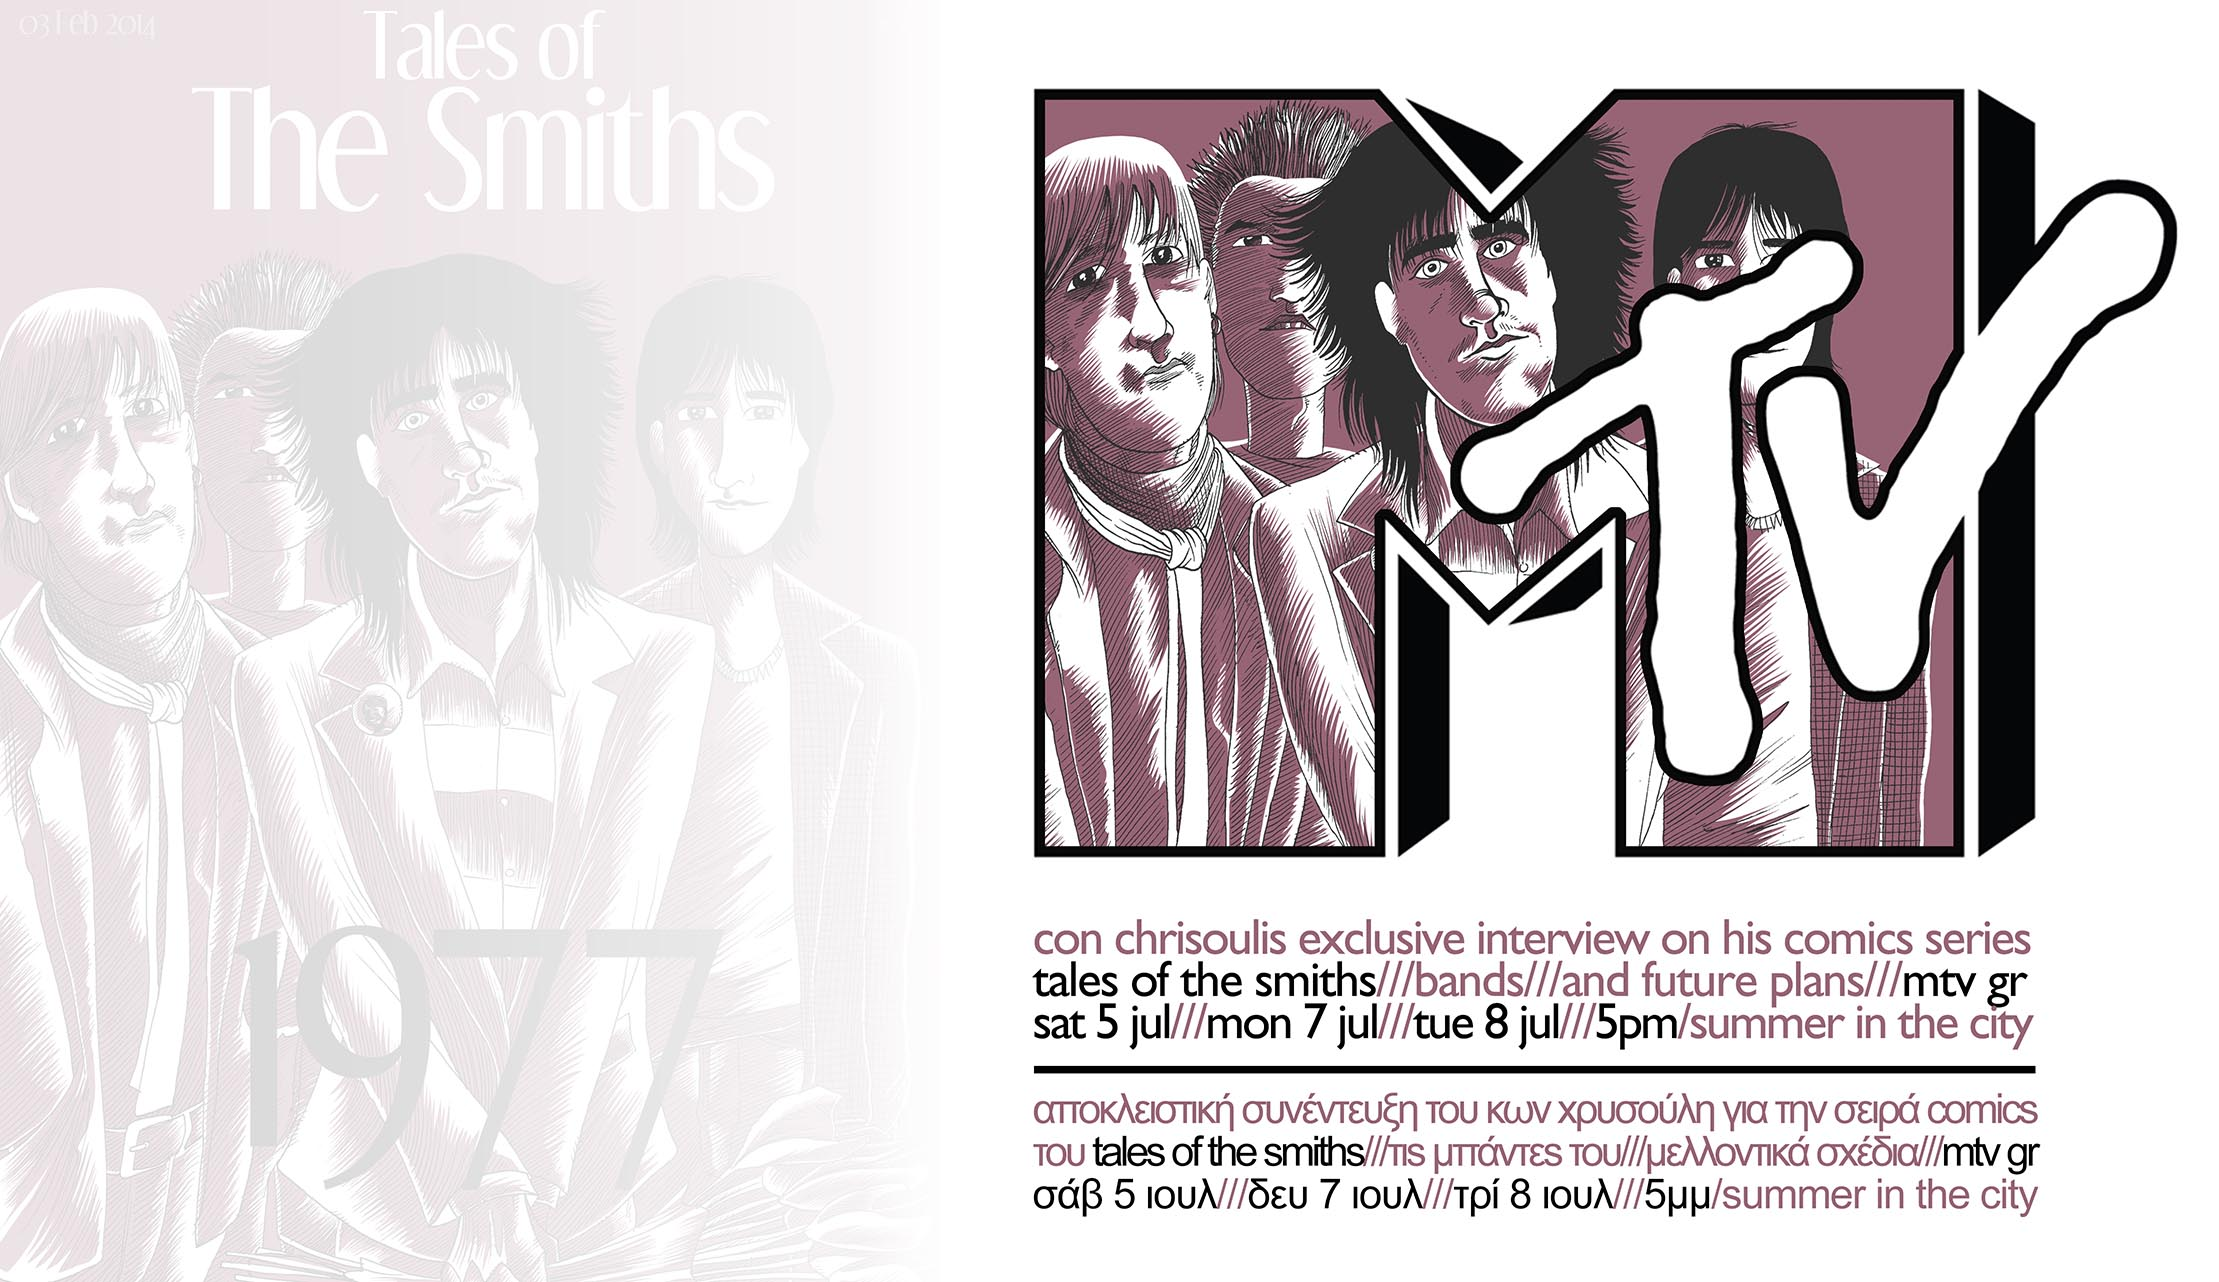 MTV_logo_Tales_of_The_Smiths_sm